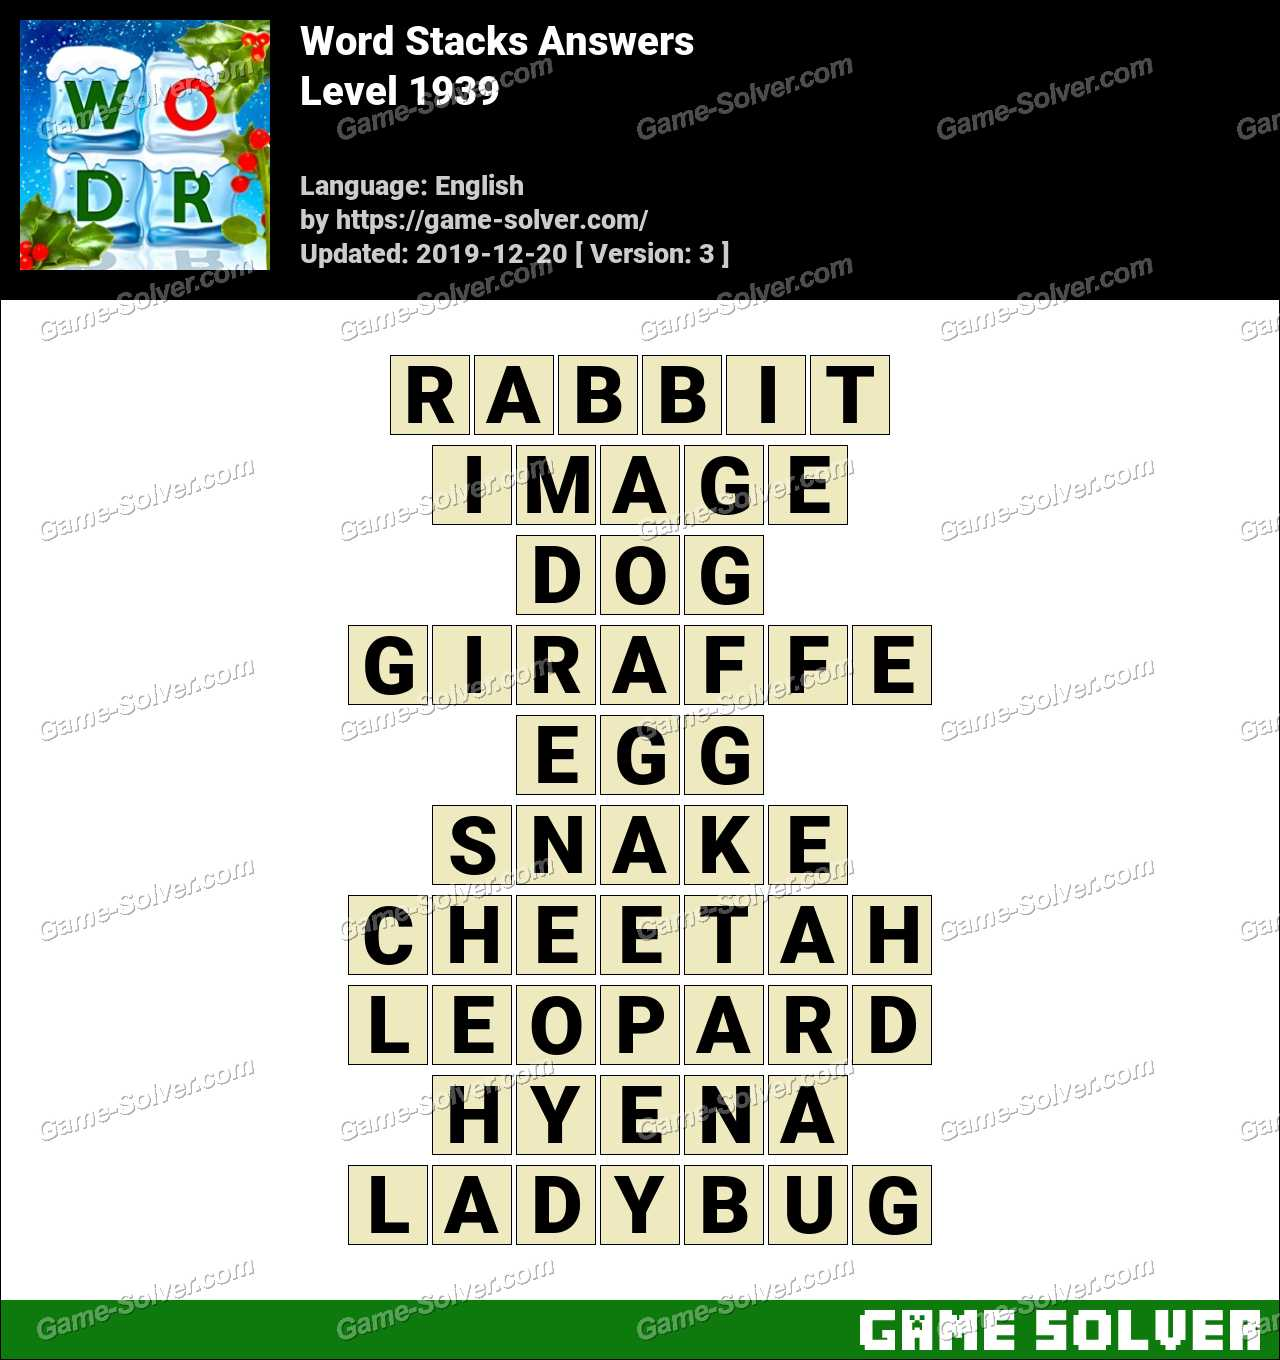 Word Stacks Level 1939 Answers